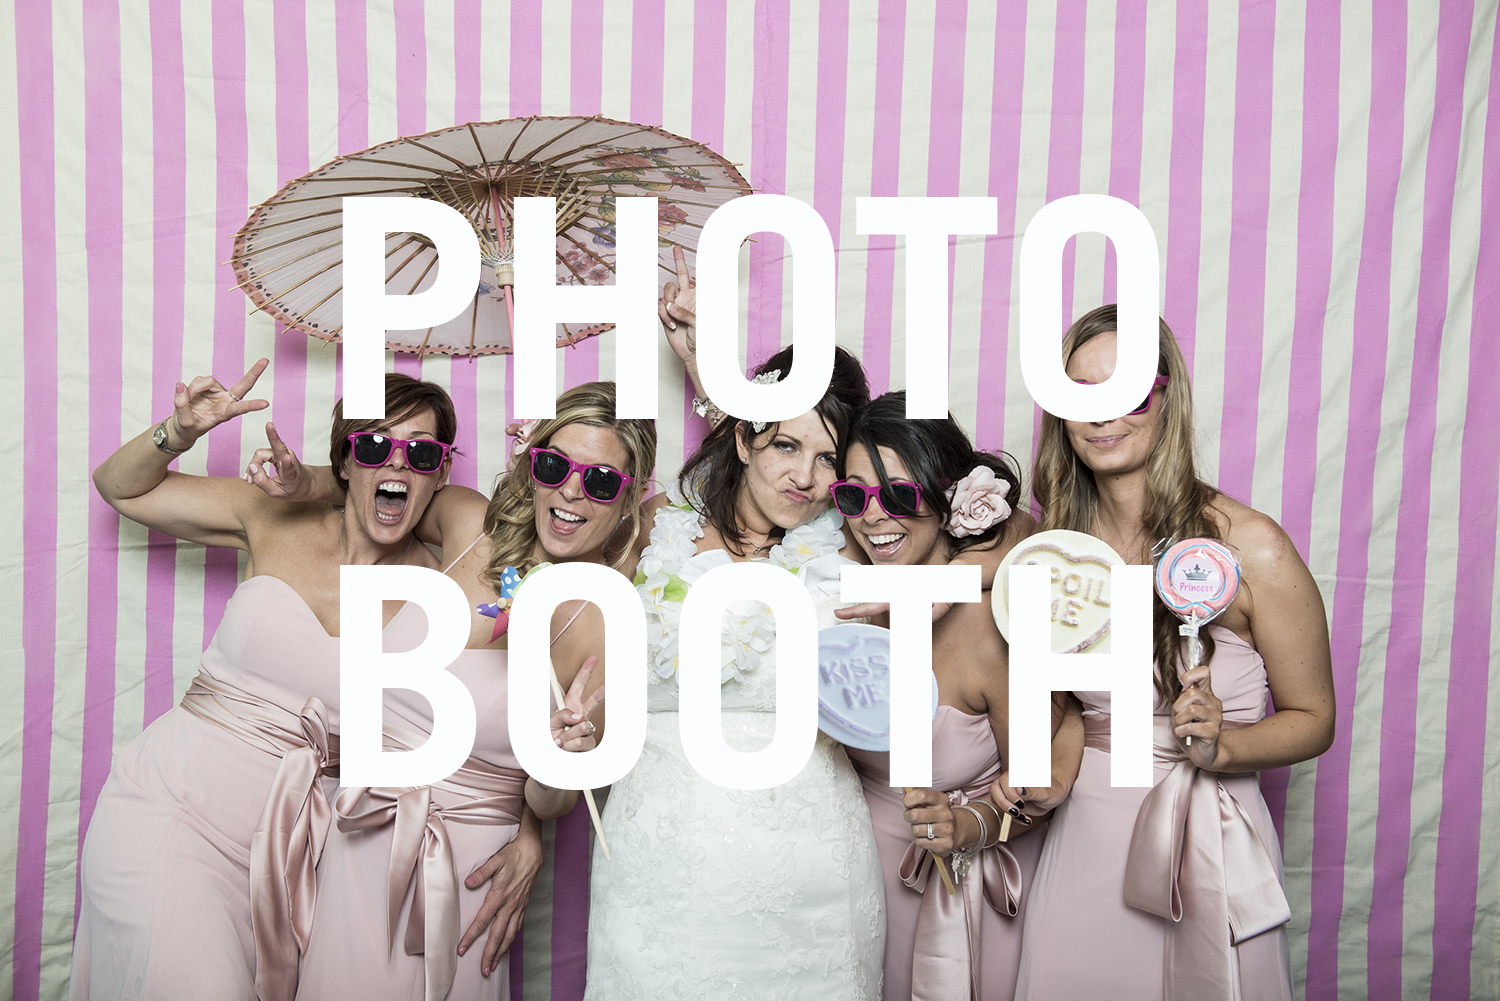 http://www.vivaweddingphotography.com/galleries/photobooth